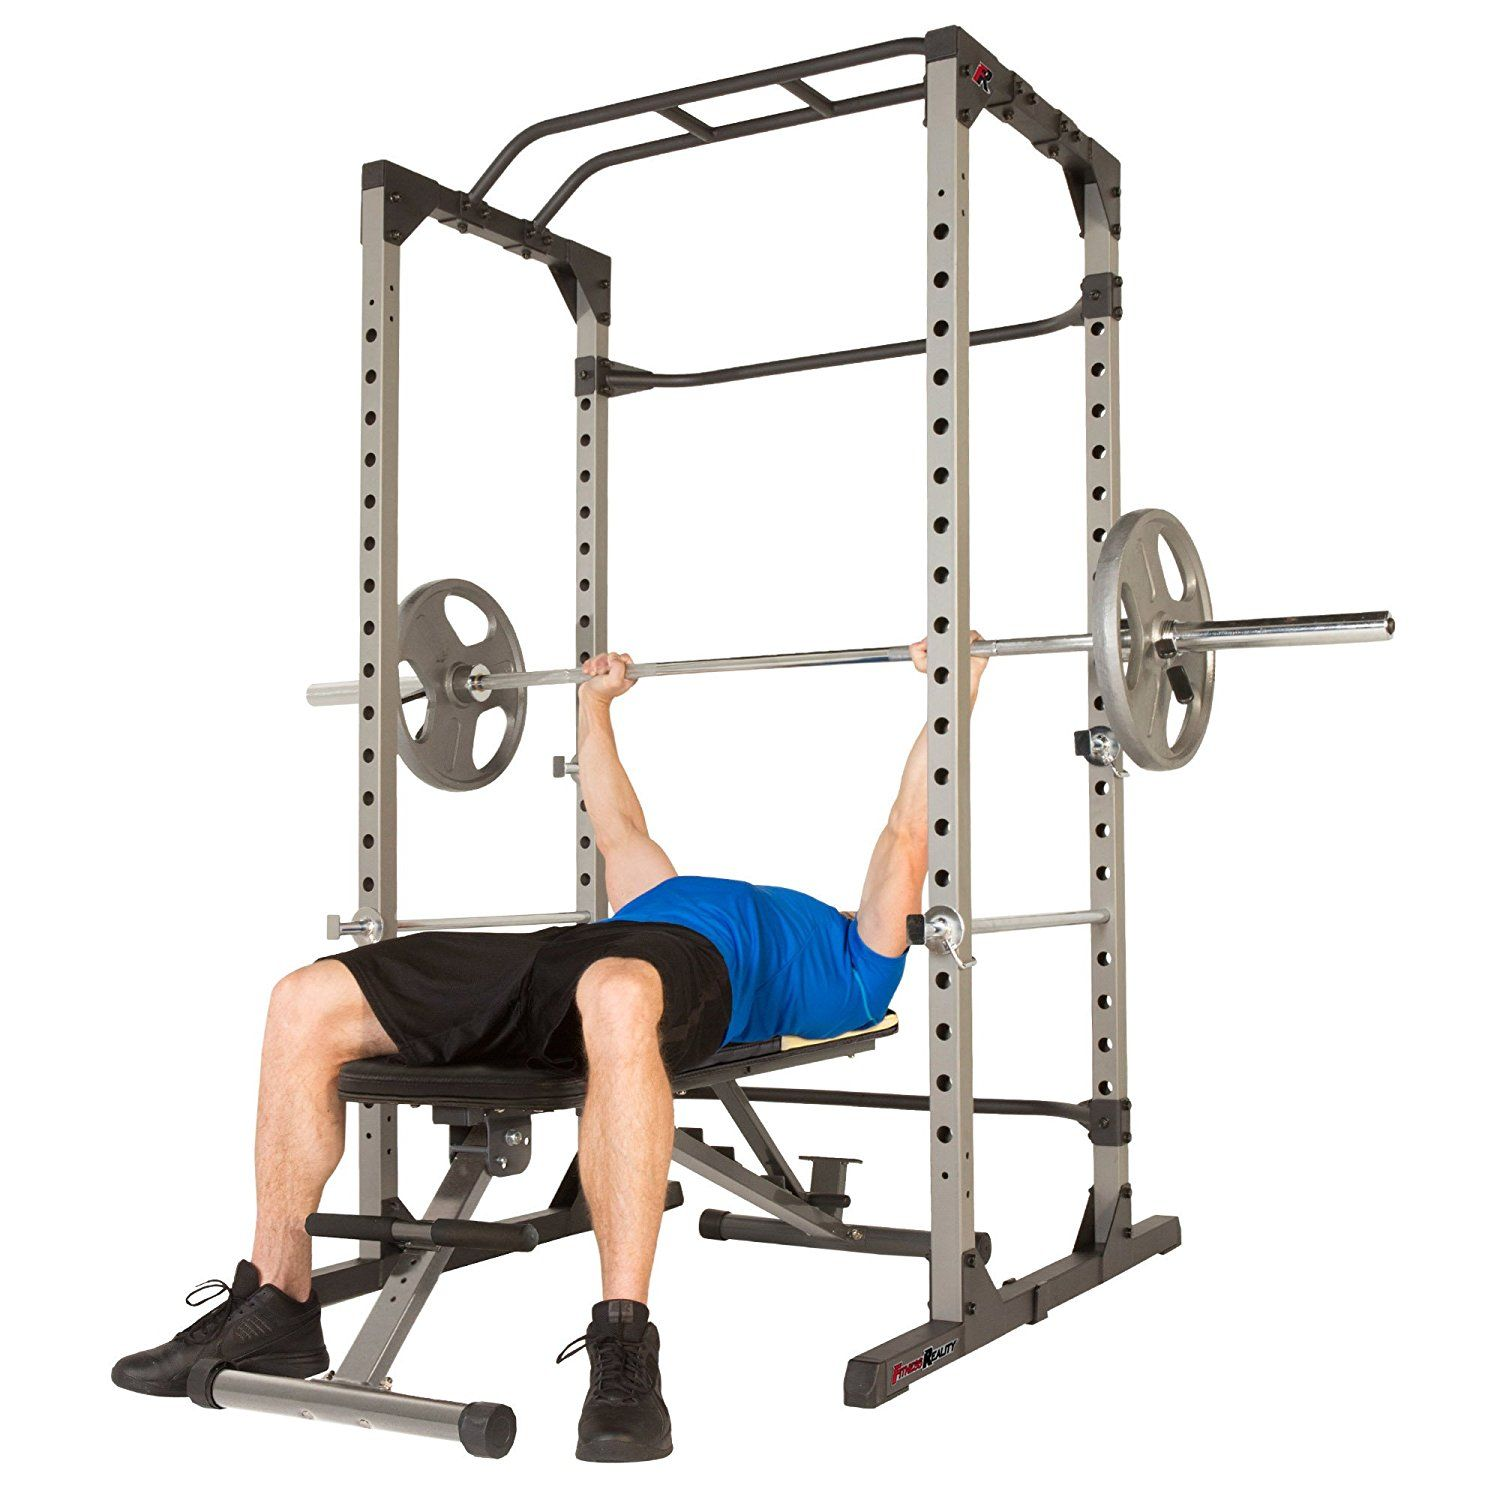 Fitness Reality 810xlt Super Max Power Cage Best Home Gym Equipment Weight Benches At Home Gym